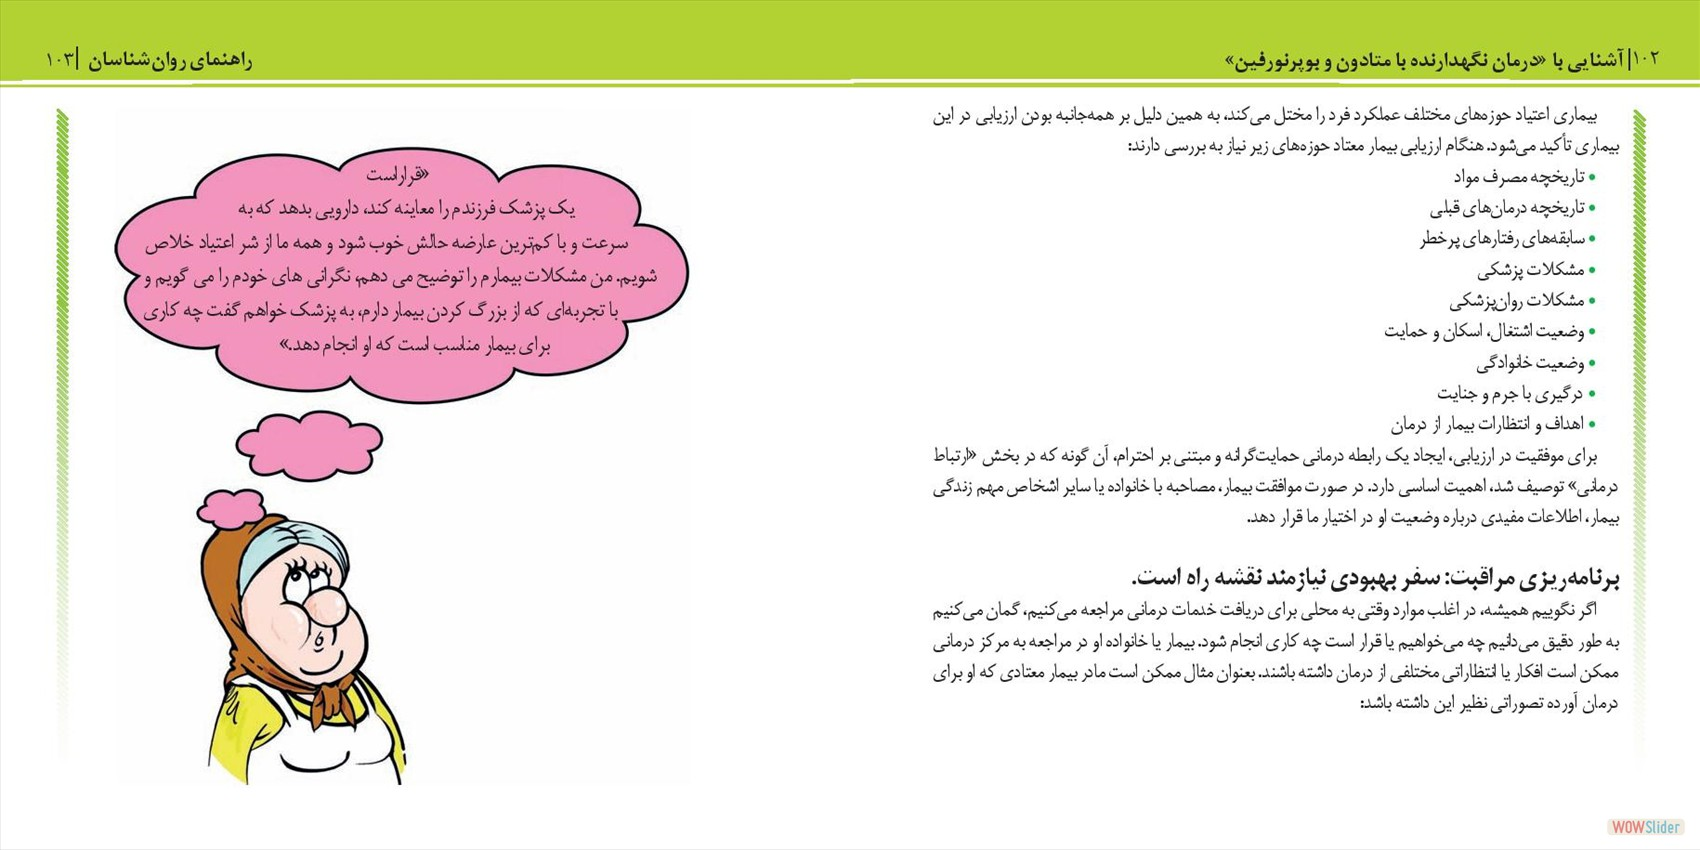 Psychologist_Booklet_farsi_low-page-058